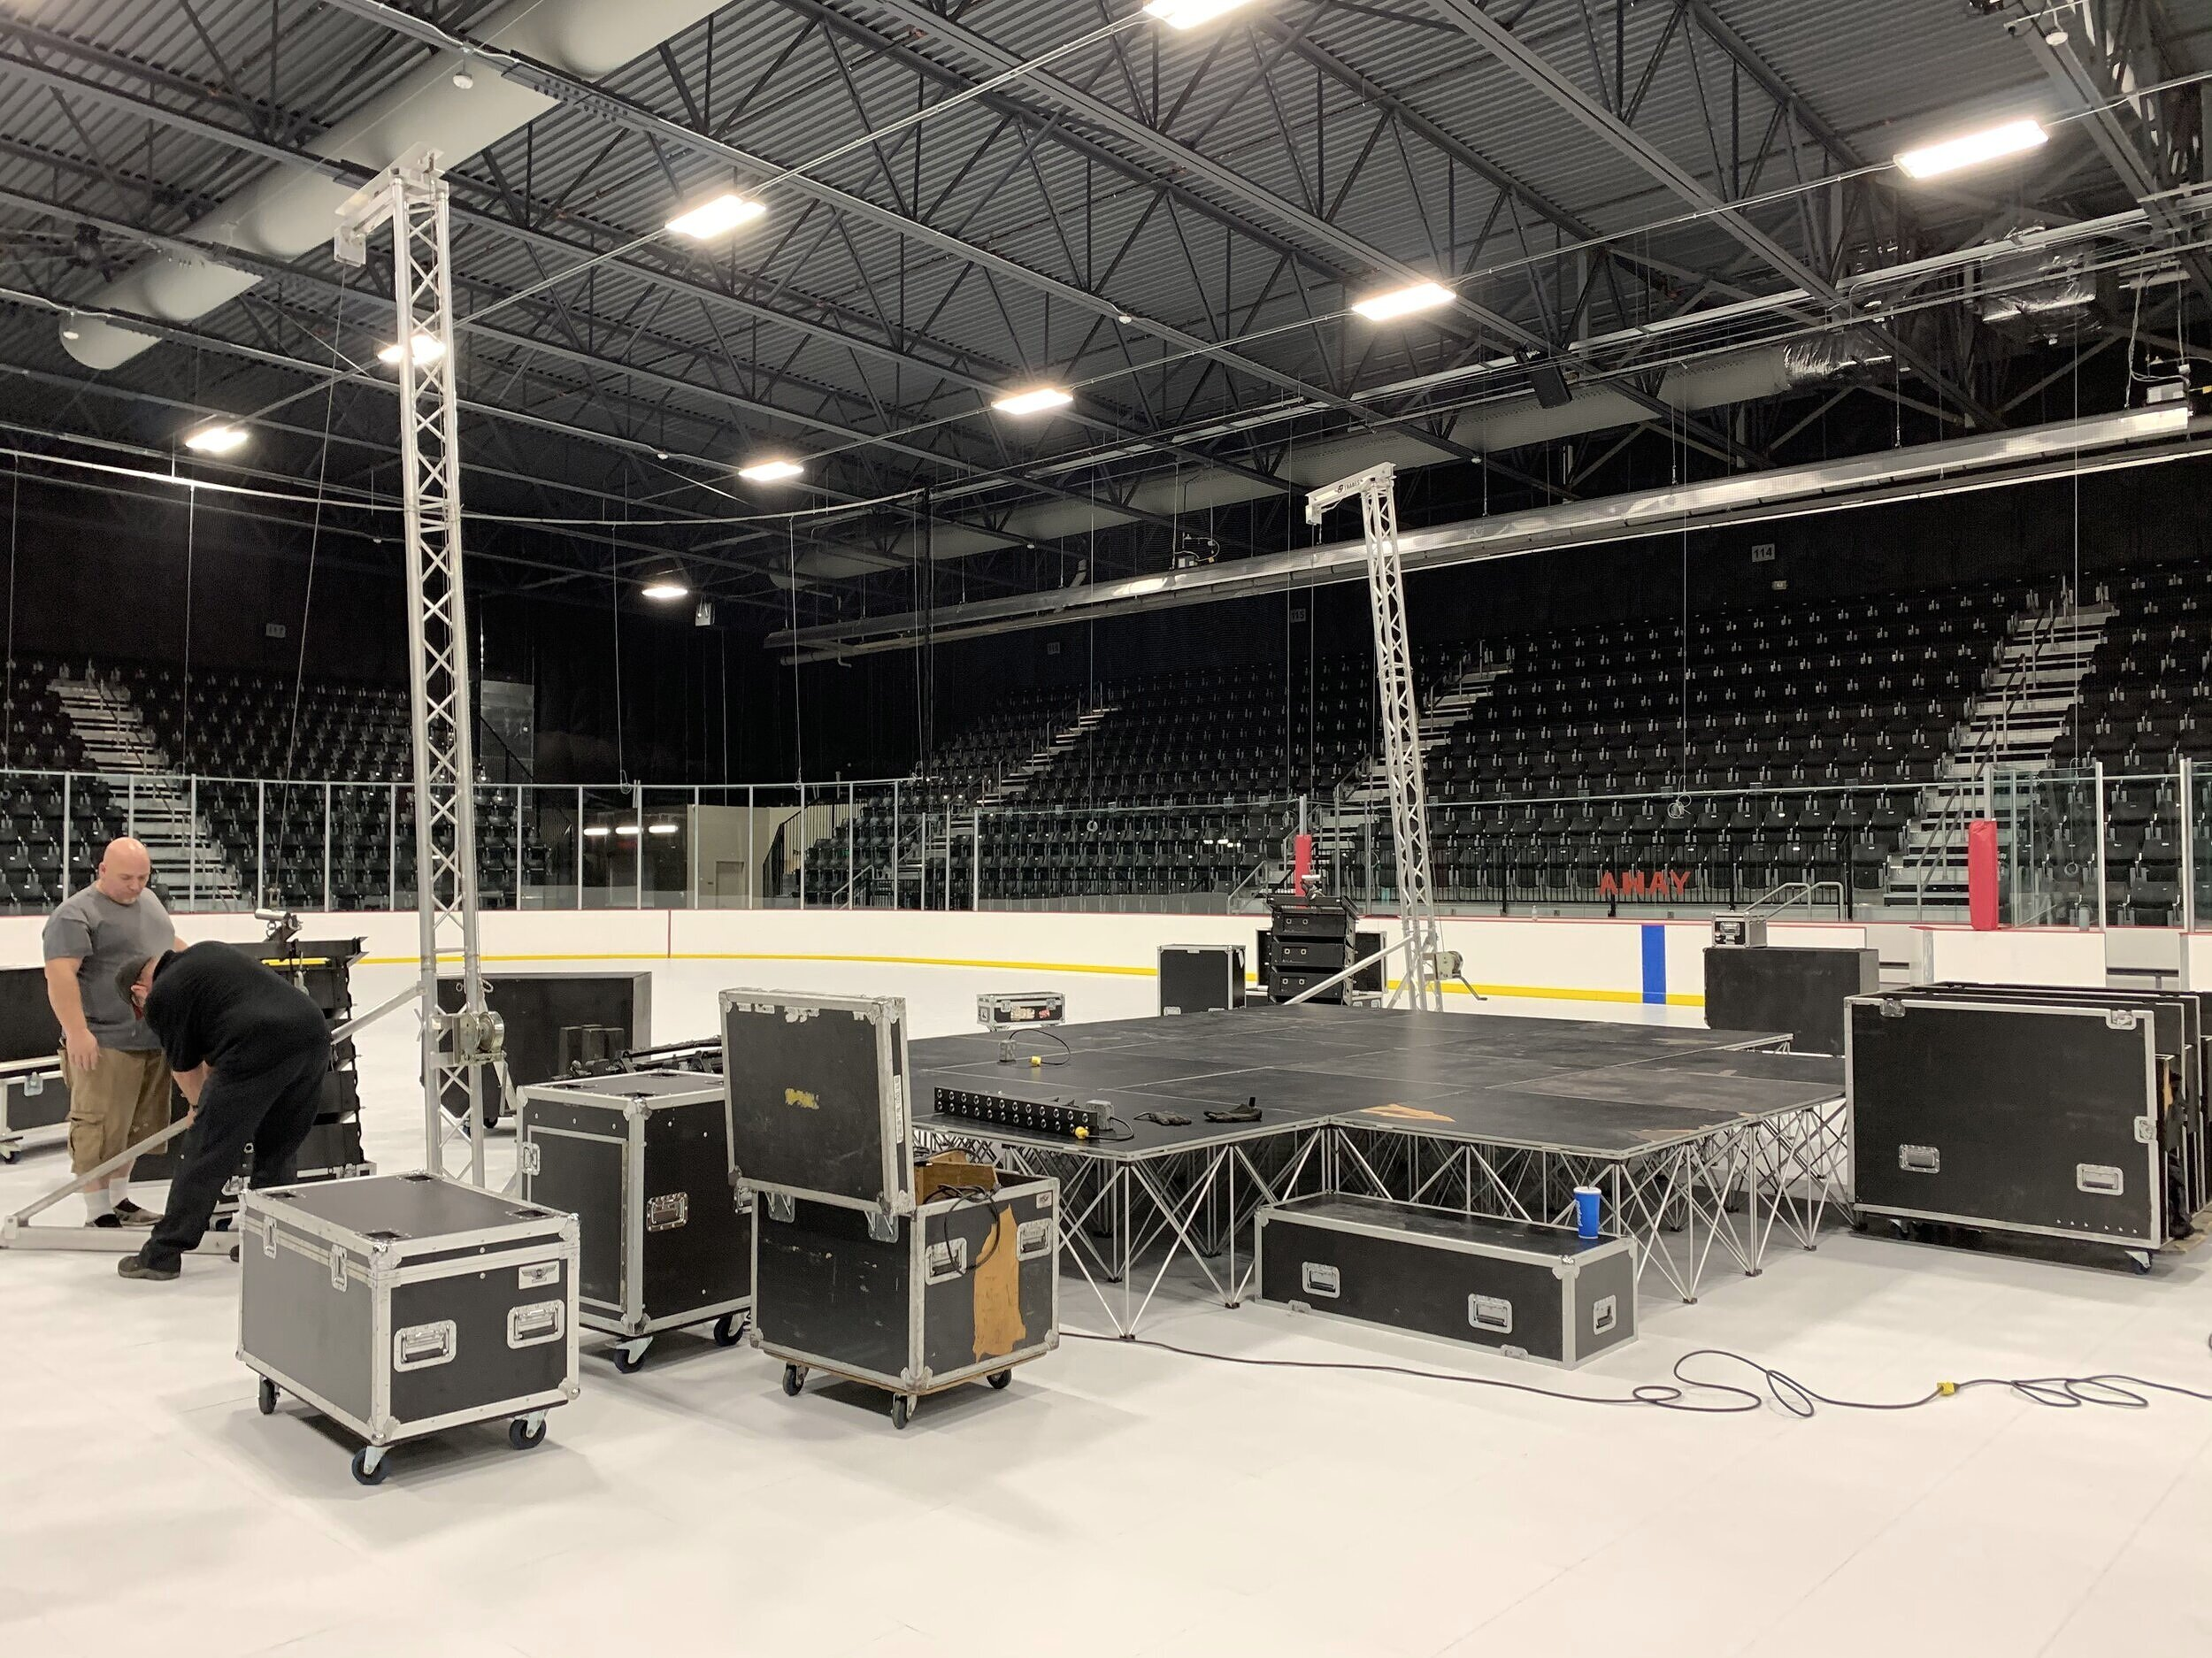 Build stages and load speaker towers onto the flooring.